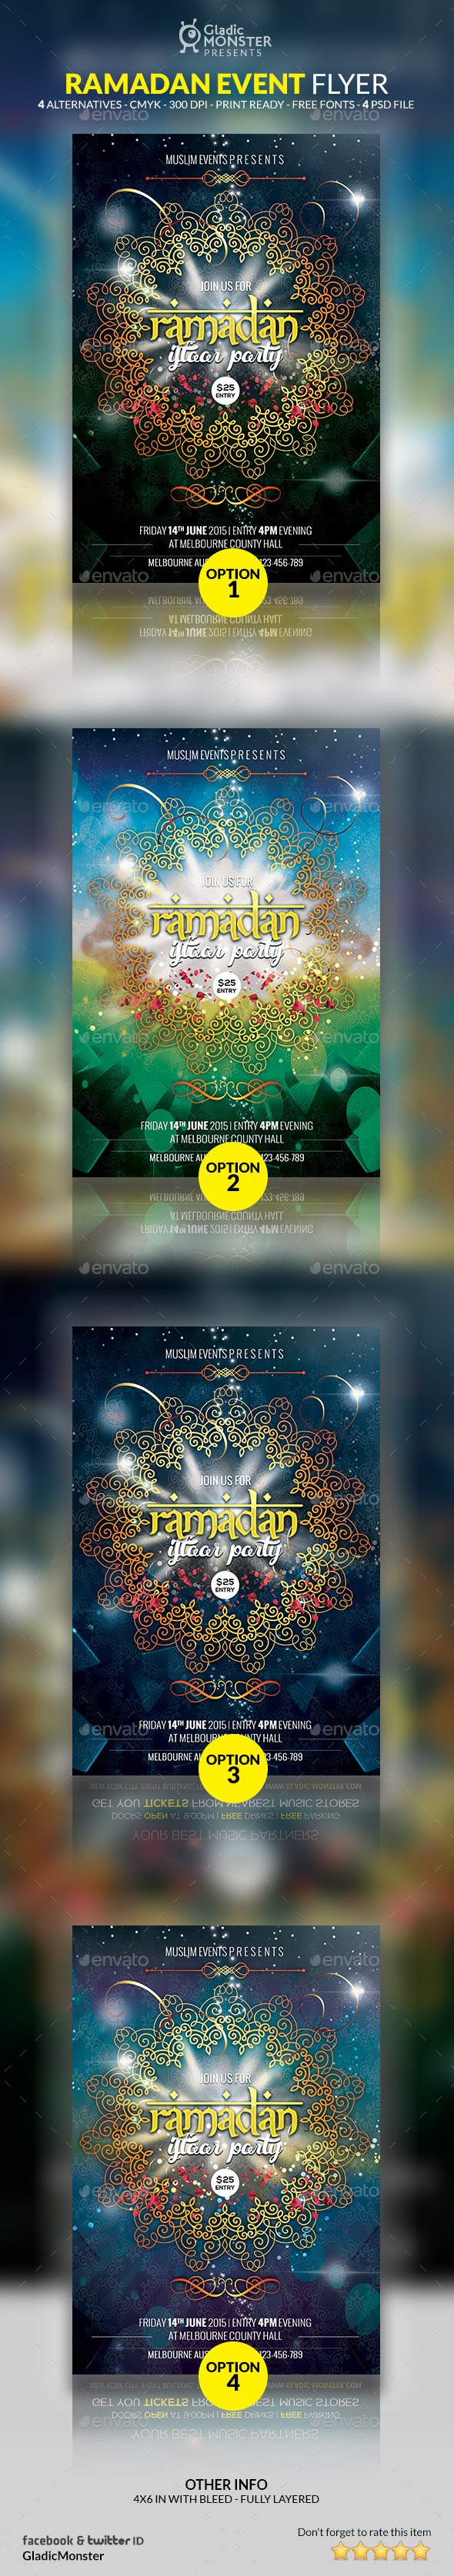 GraphicRiver Ramadan Iftaar Party Flyer 11411253